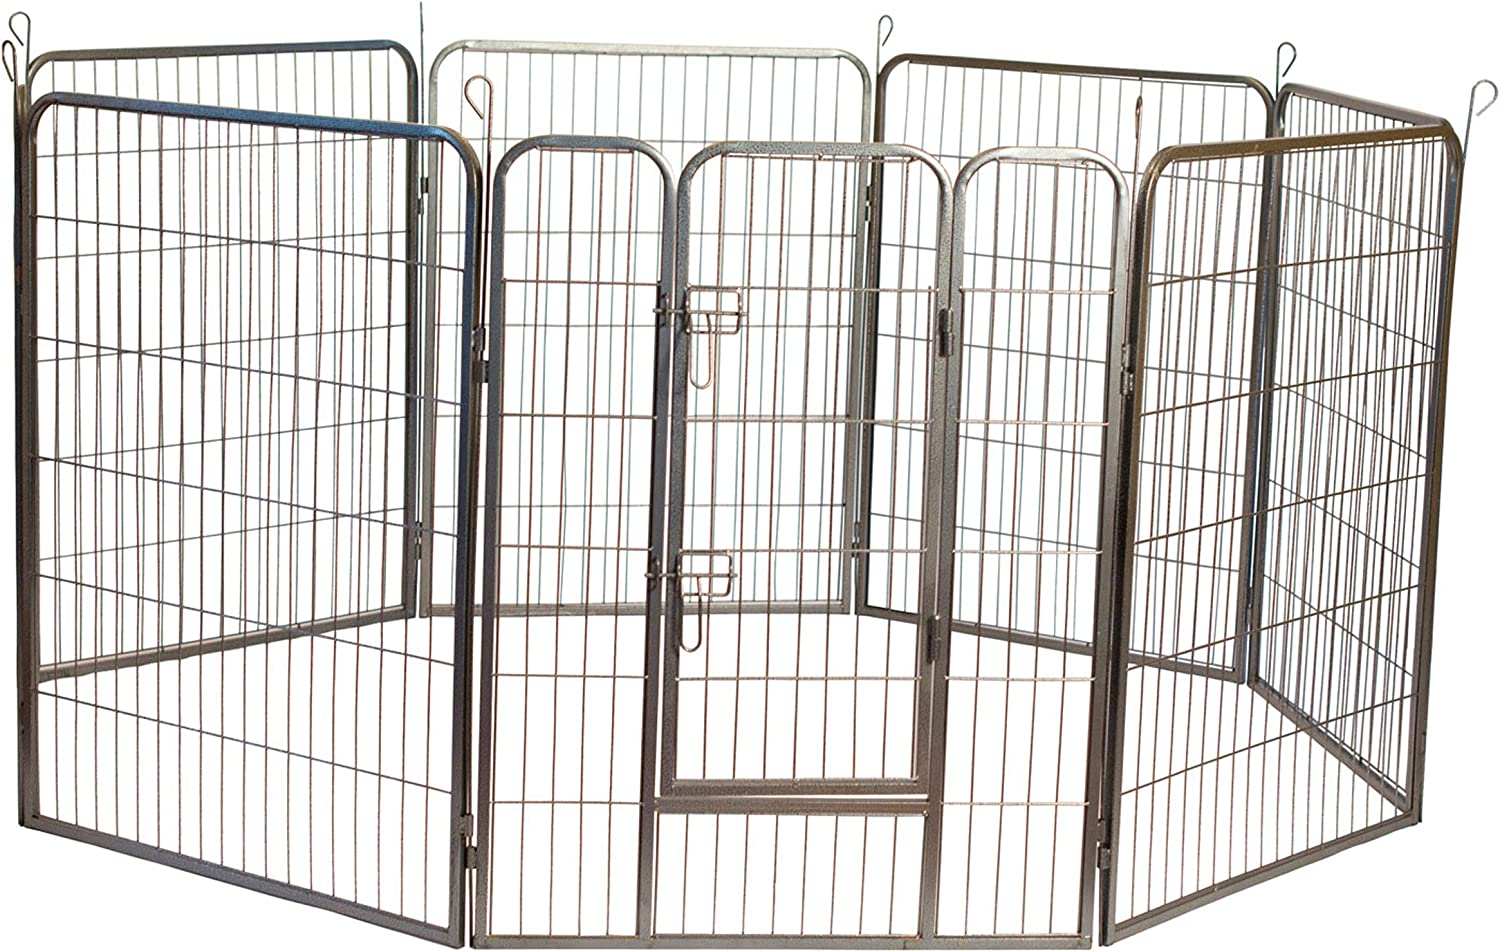 Iconic Pet Heavy Duty Metal Tube Pen Pet Dog Exercise and Training Playpen in Varying Sizes - Portable Exercise Puppy Cage with 8 Interlocking Metal Tube Panels, No Tools Required to Setup